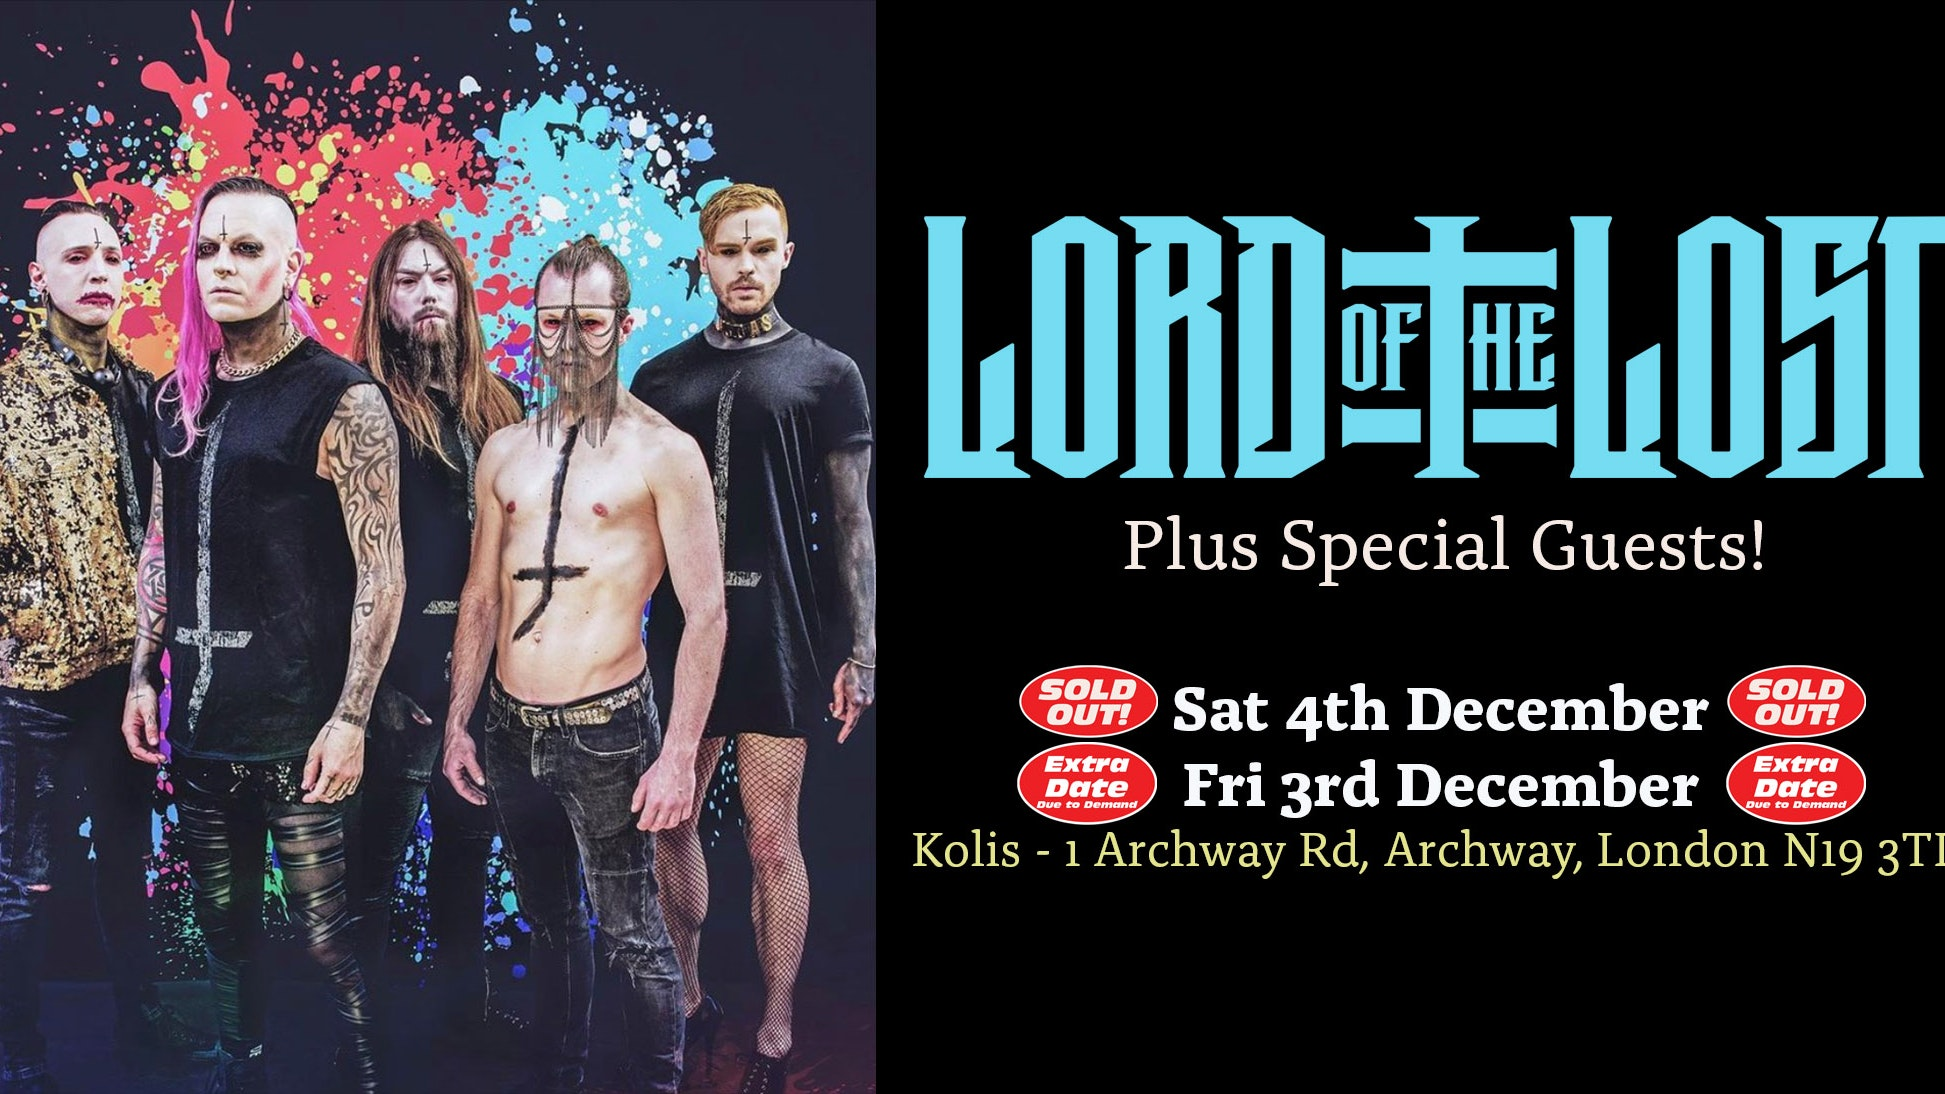 LORD OF THE LOST SOLD OUT ! EXTRA DATE ADDED ON FRIDAY 3rd DECEMBER!